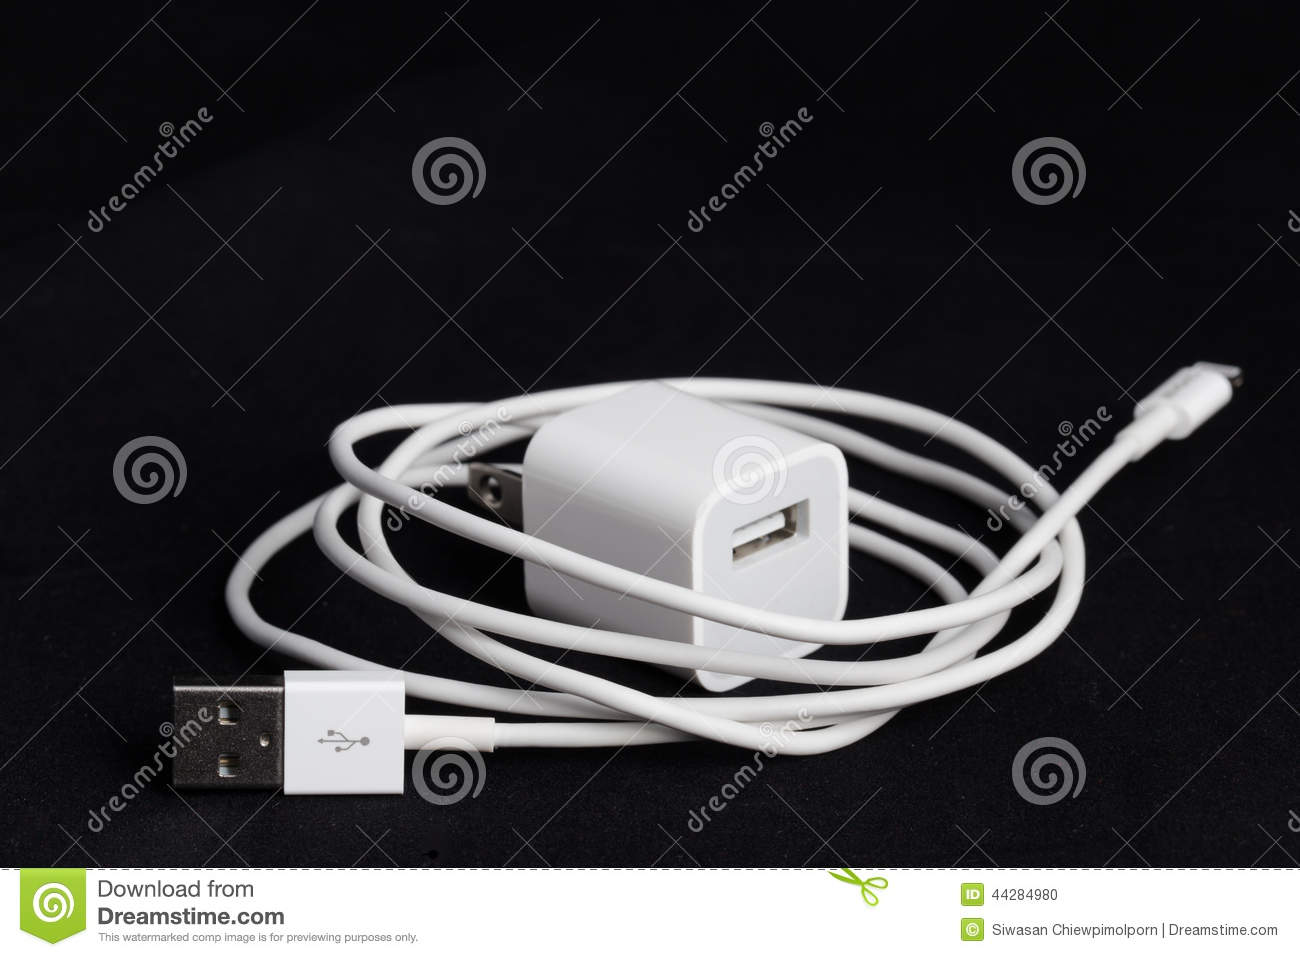 Cartoon Power Cord : Tools with power cord royalty free stock image